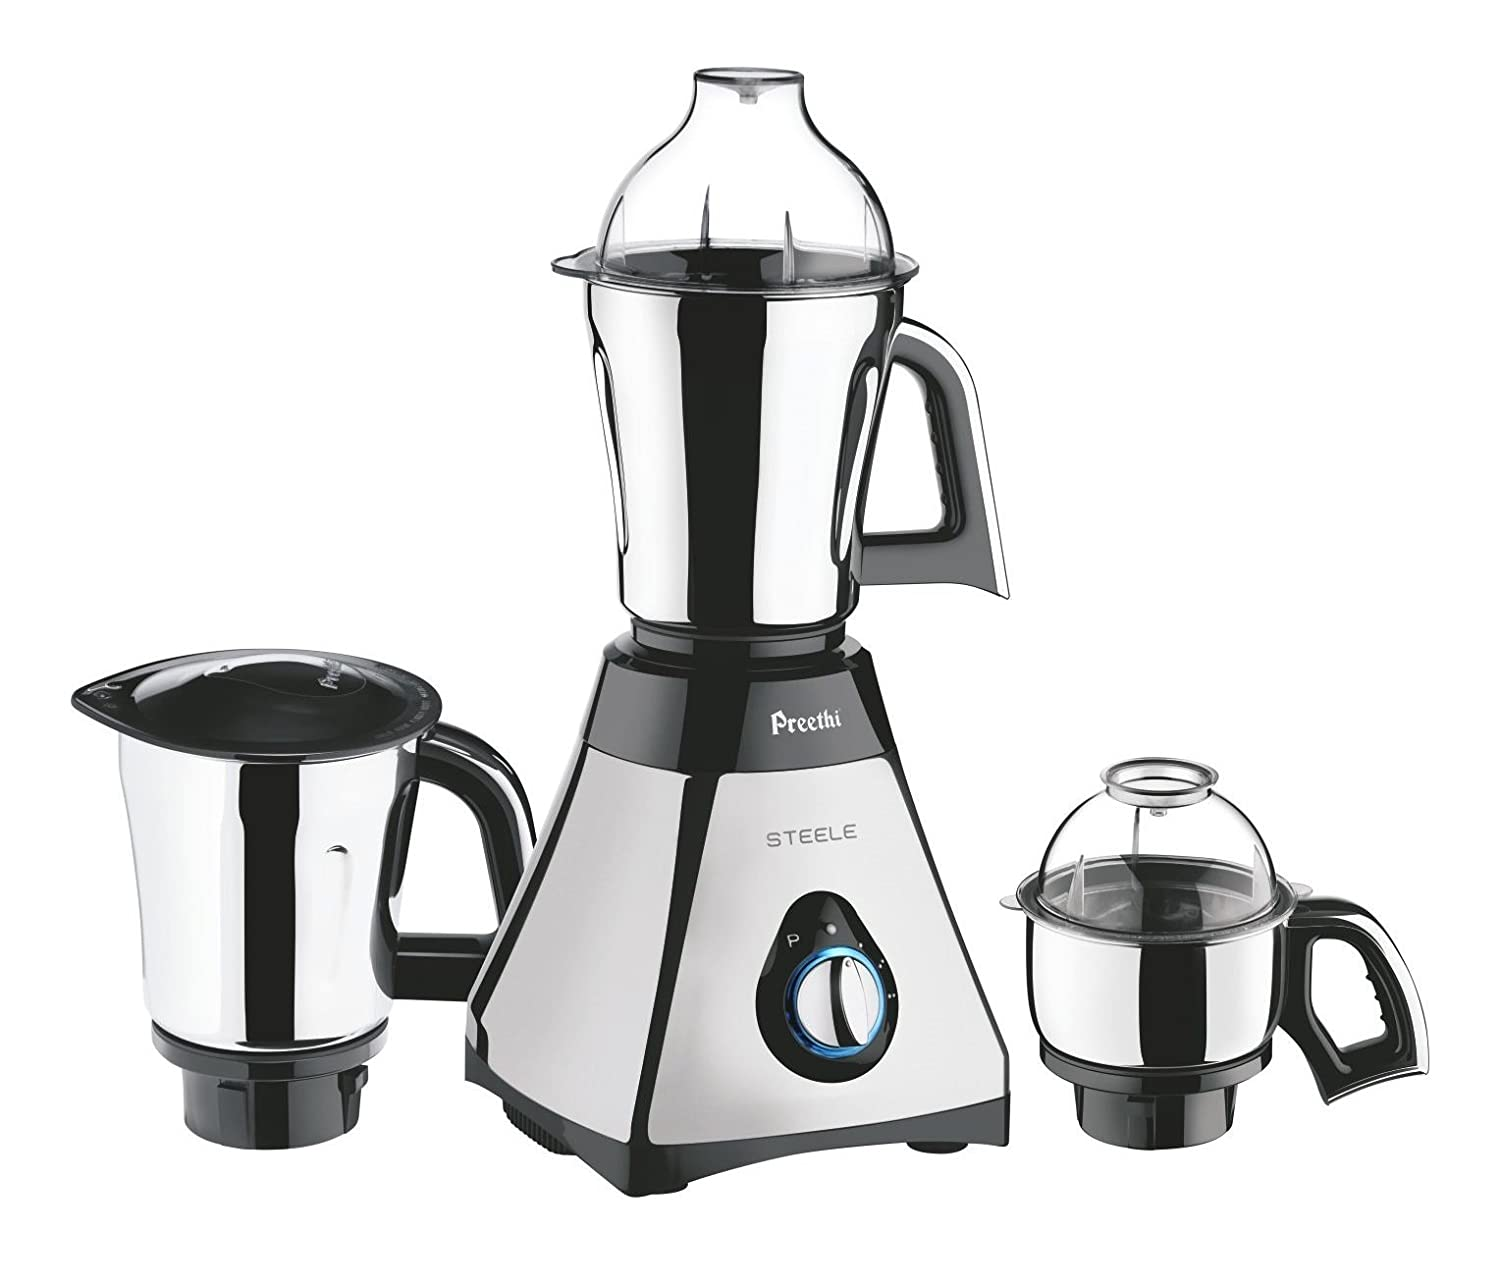 Preethi Steele Mixer Grinder with Turbo Vent and Improved Couplers